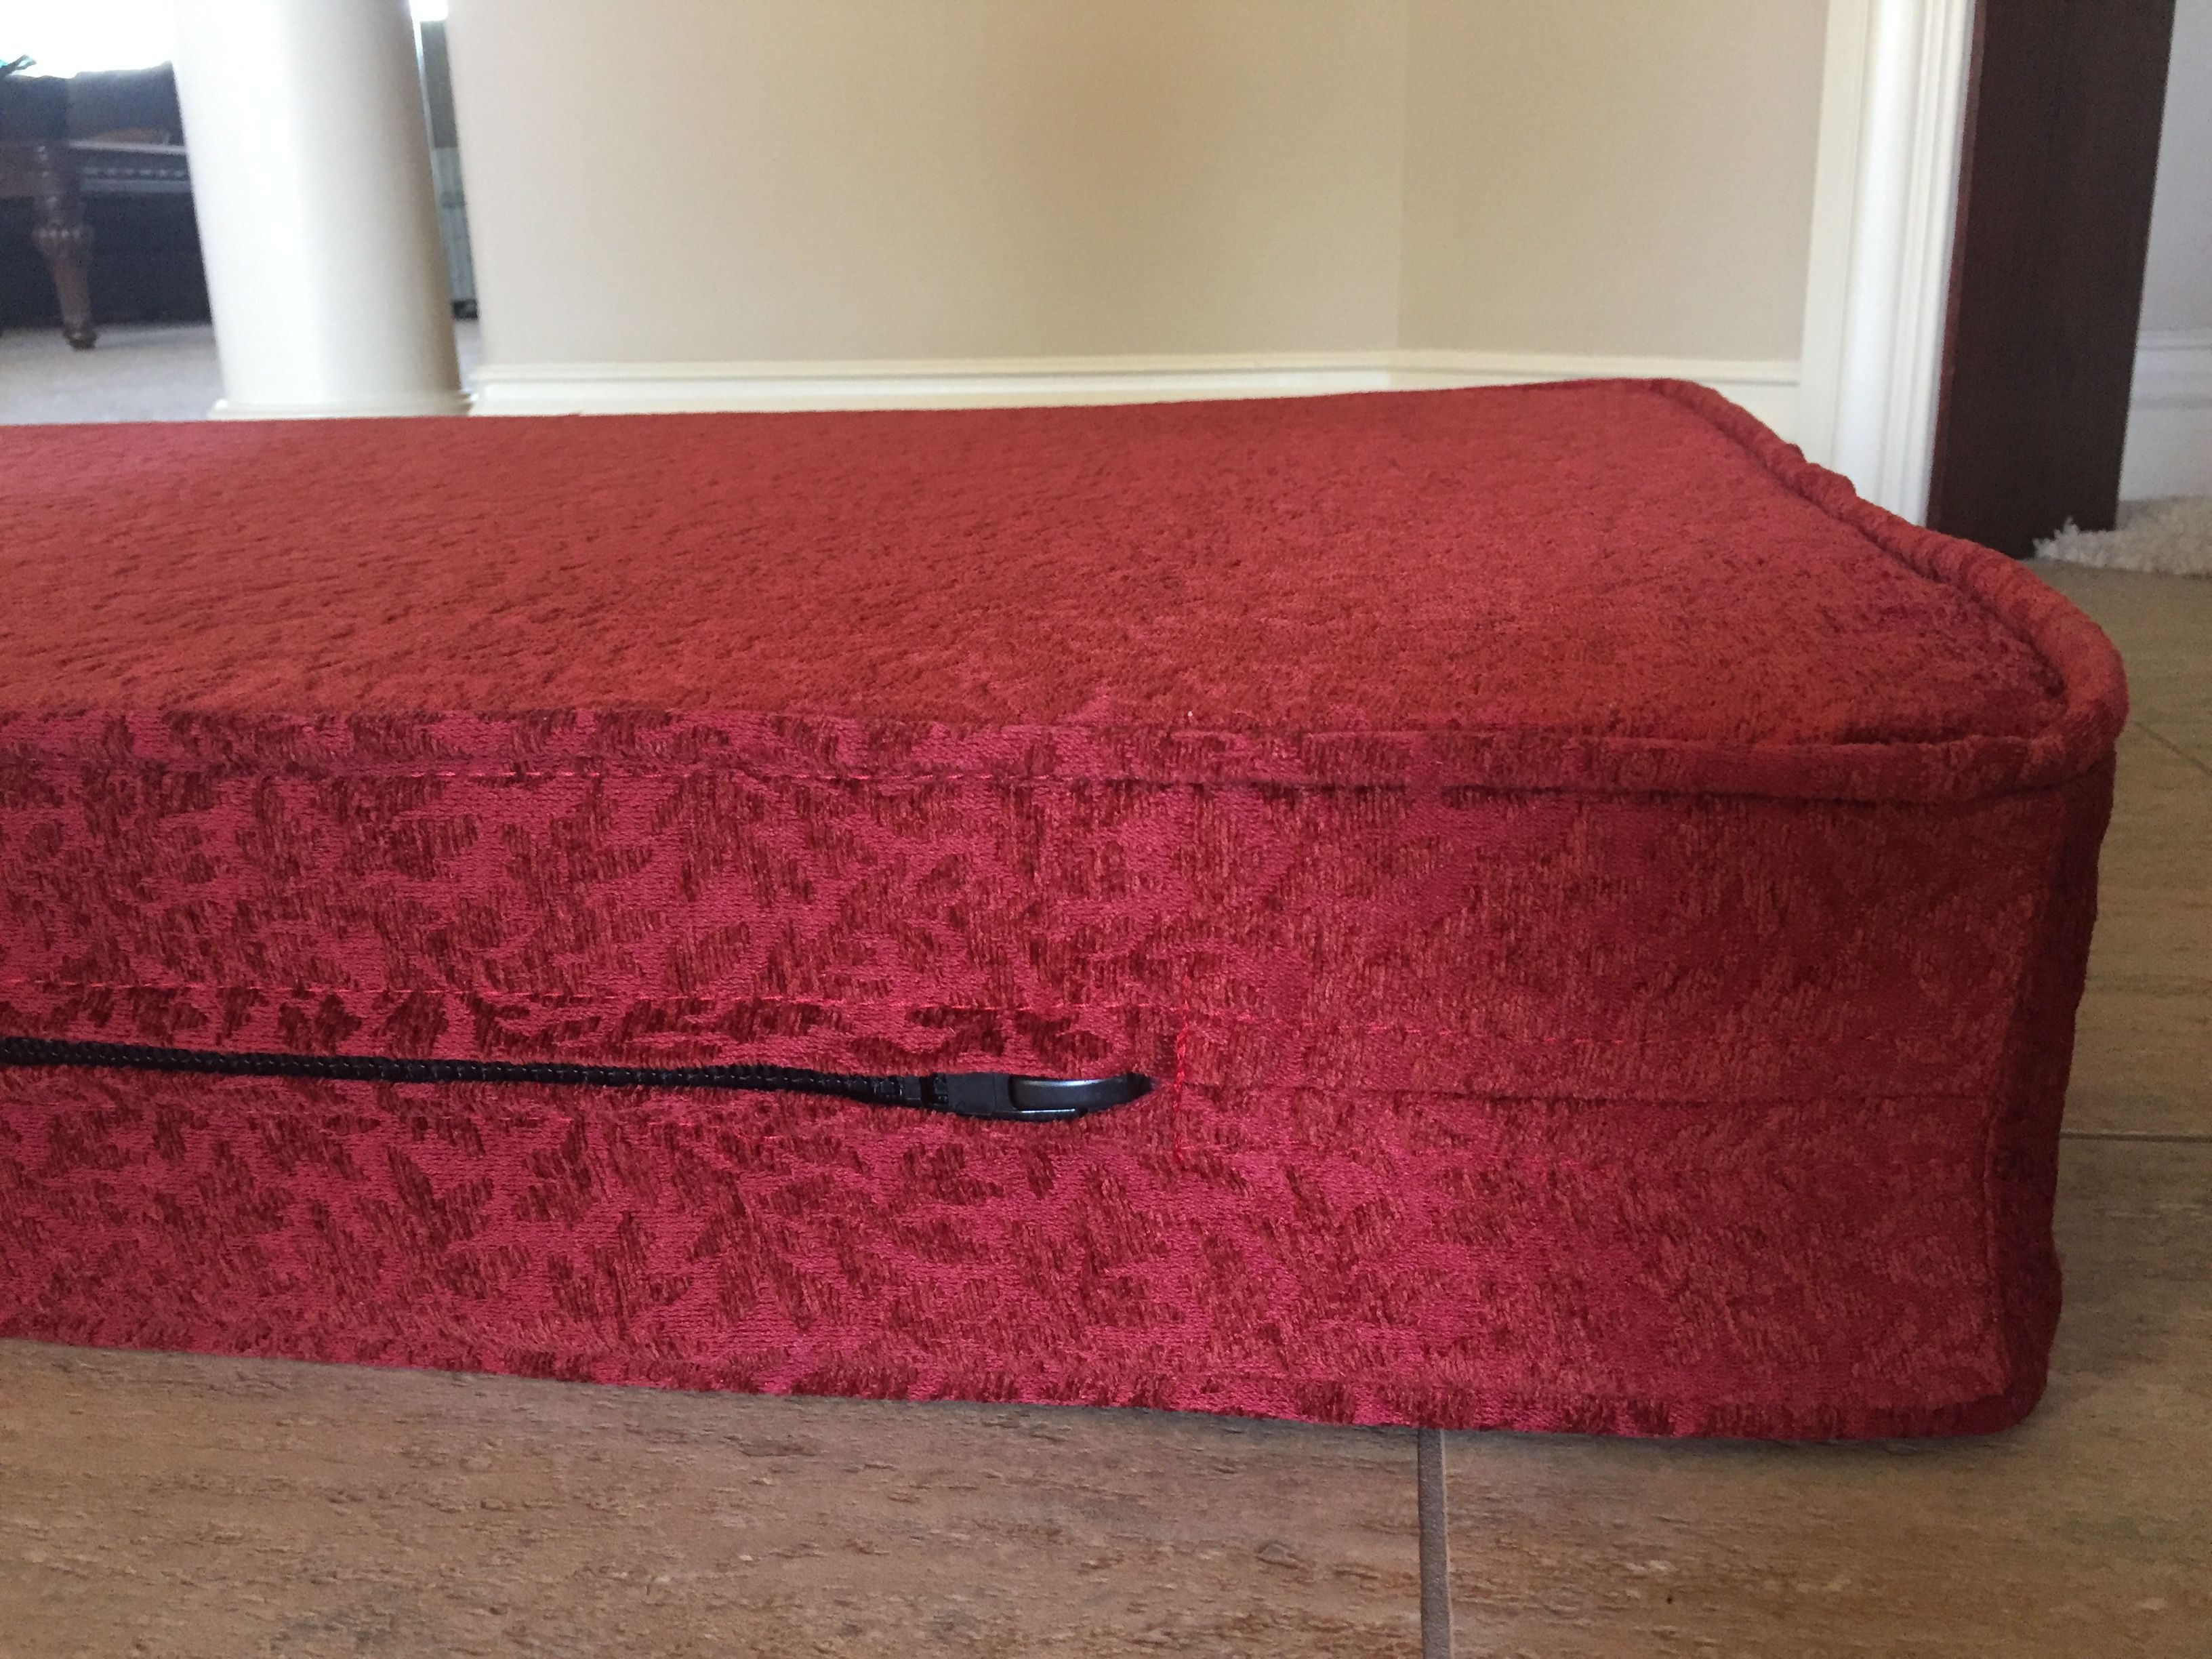 Custom 7 Foot Cushion For A Kitchen Bench Seat With Piping And Zipper On The Back Side Made An Elegant Waverly Home Décor Fabric In Dark Red